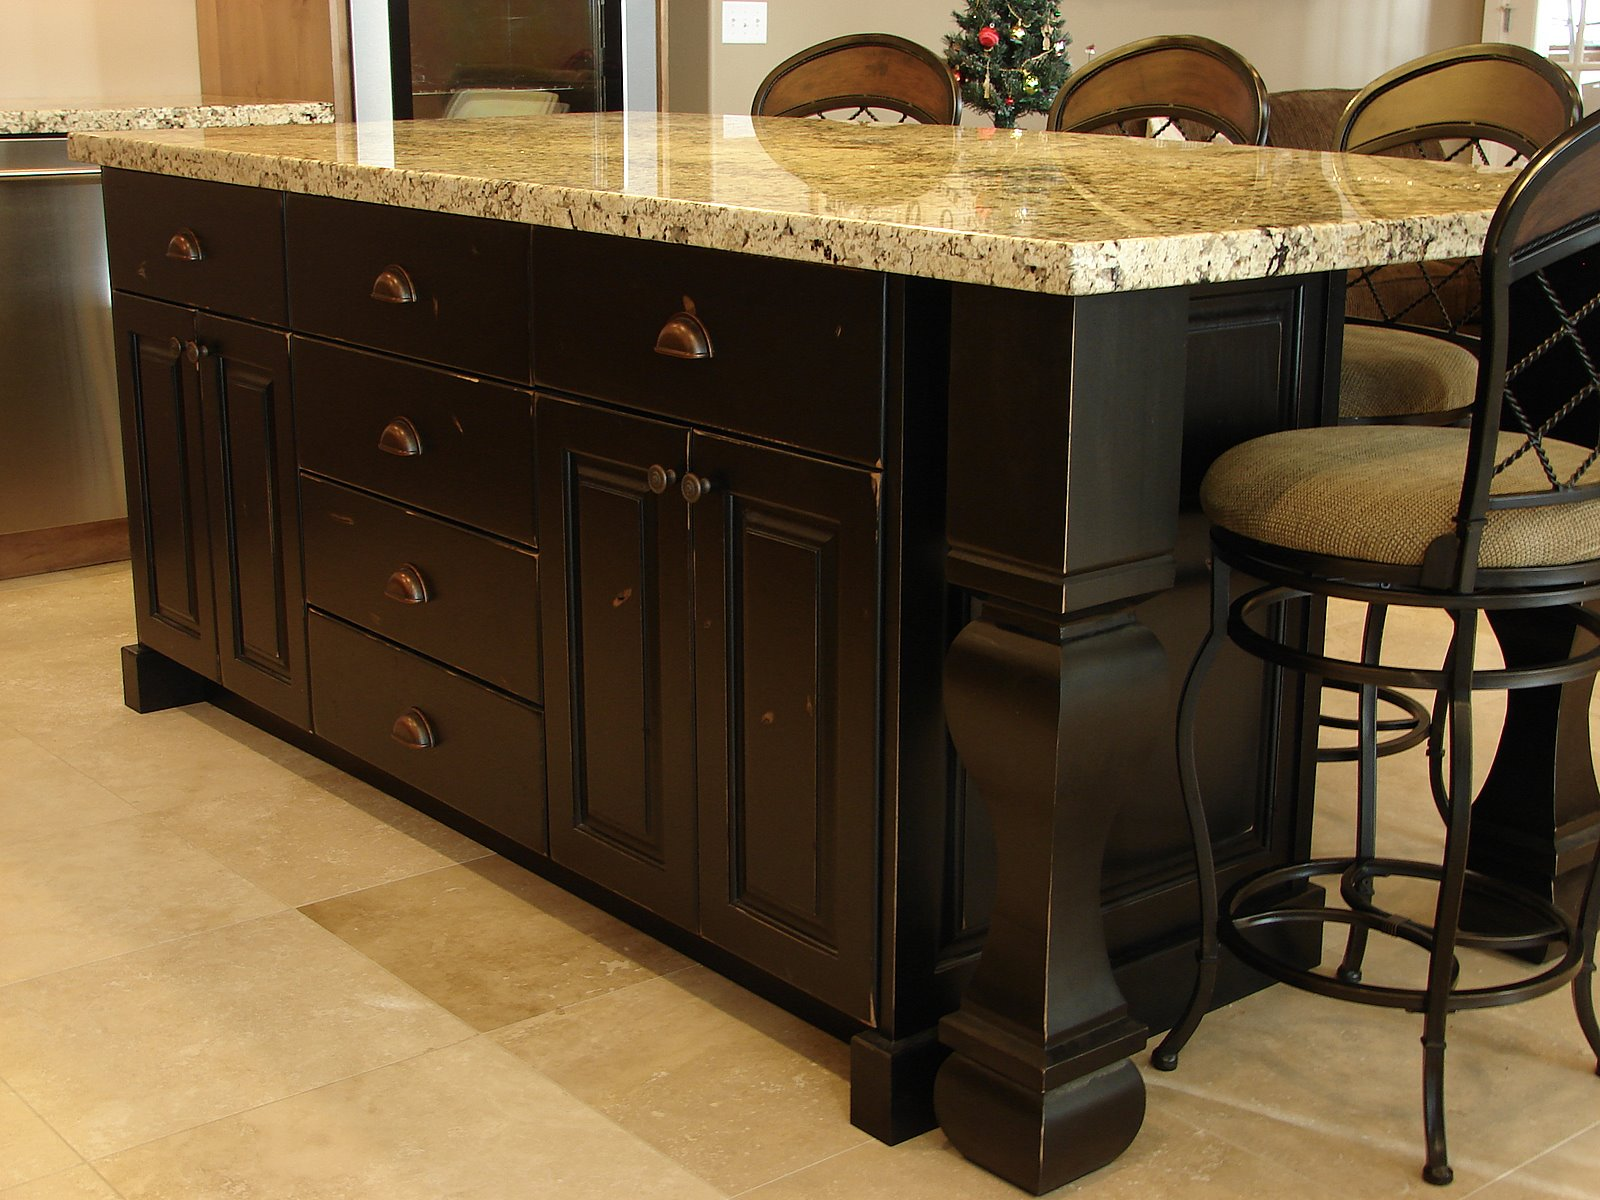 LEC Cabinets: Rustic Knotty Alder Cabinets